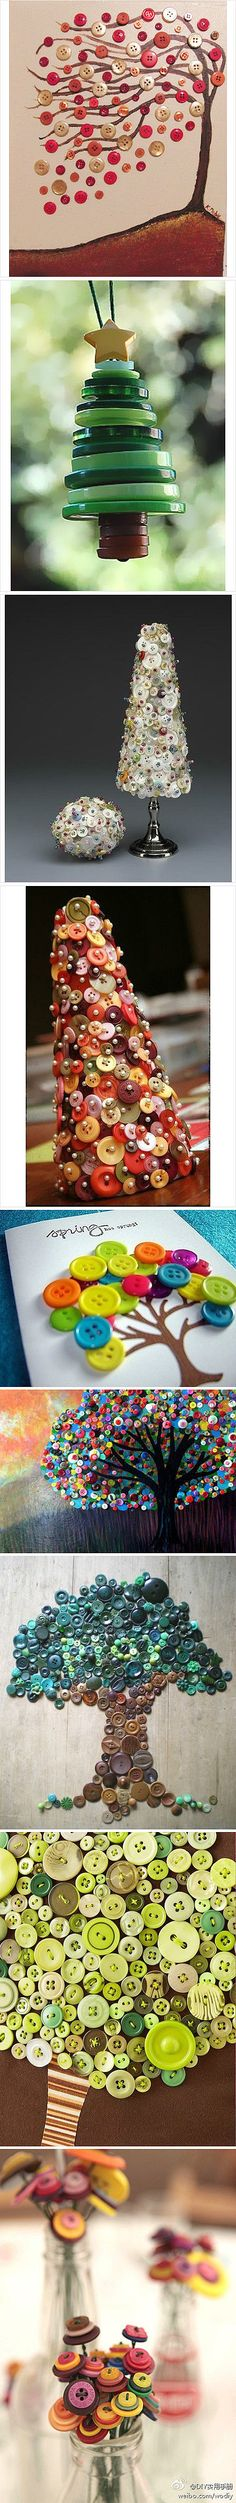 Lots of ideas. I liked the little button tree ornament.